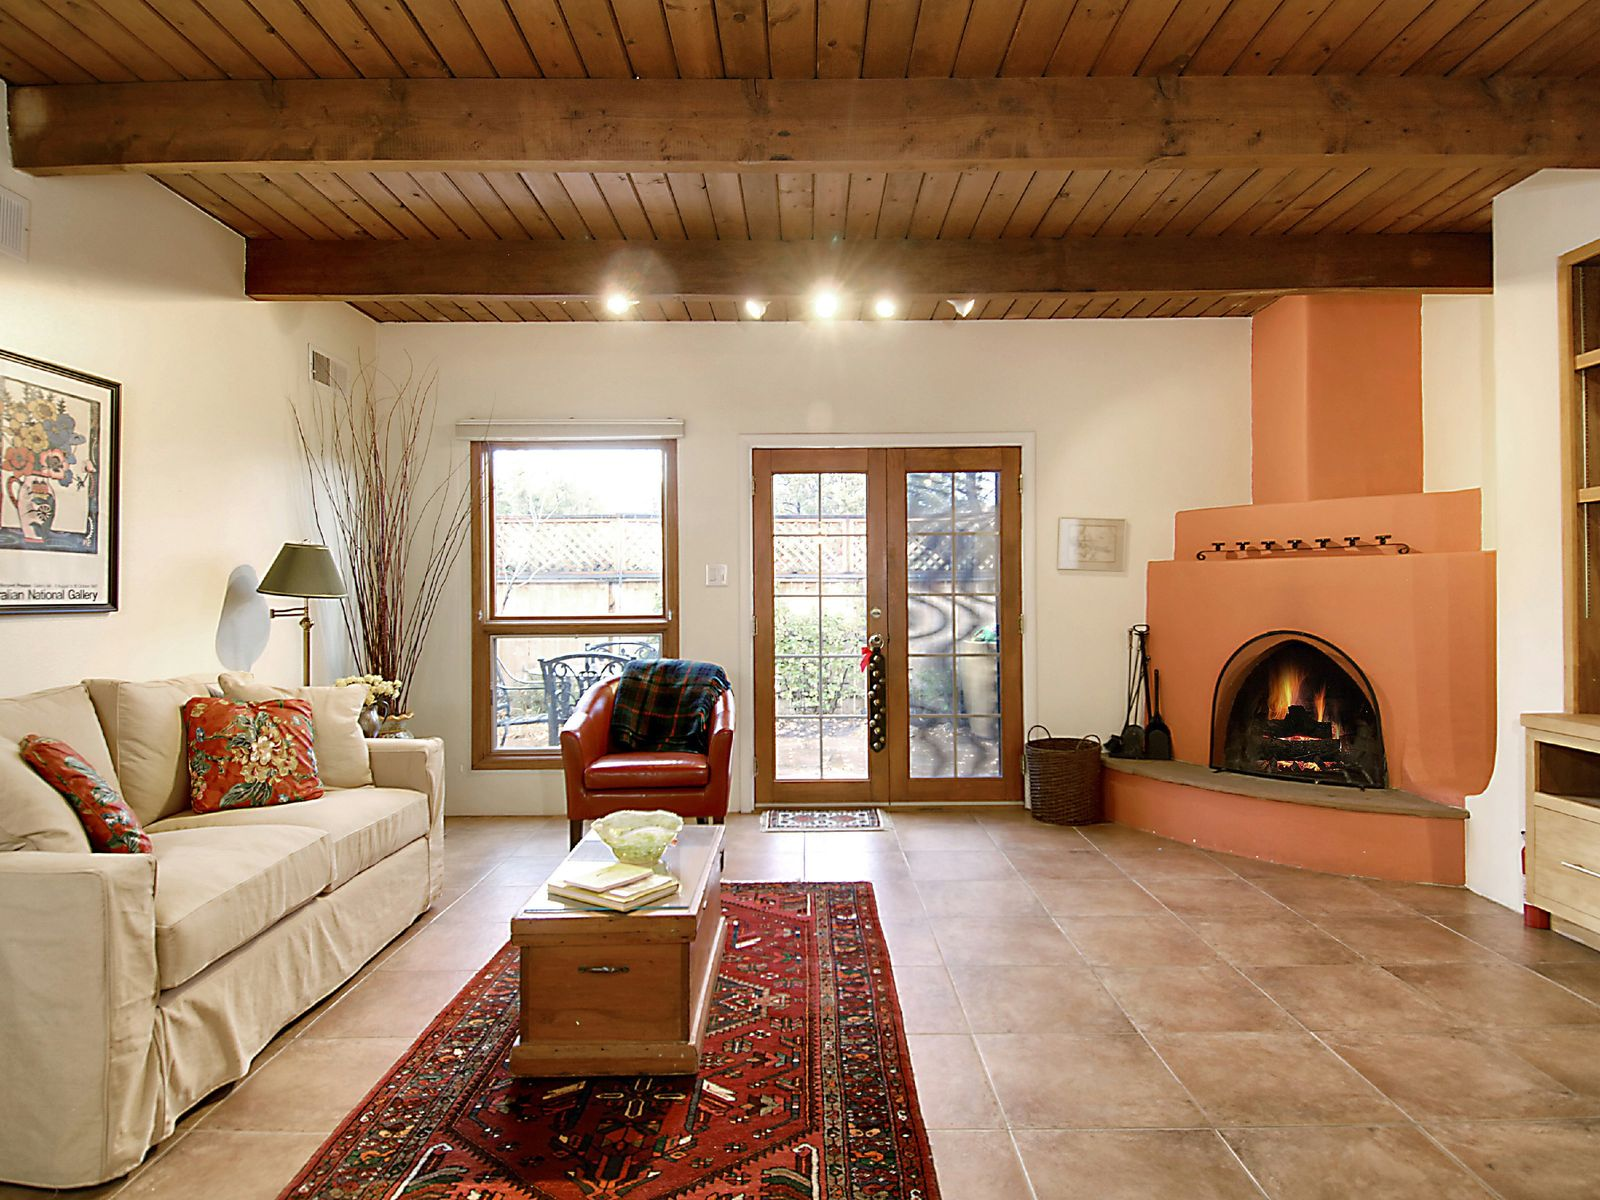 3100 Plaza Blanca, Santa Fe NM Townhouse - Santa Fe Real Estate